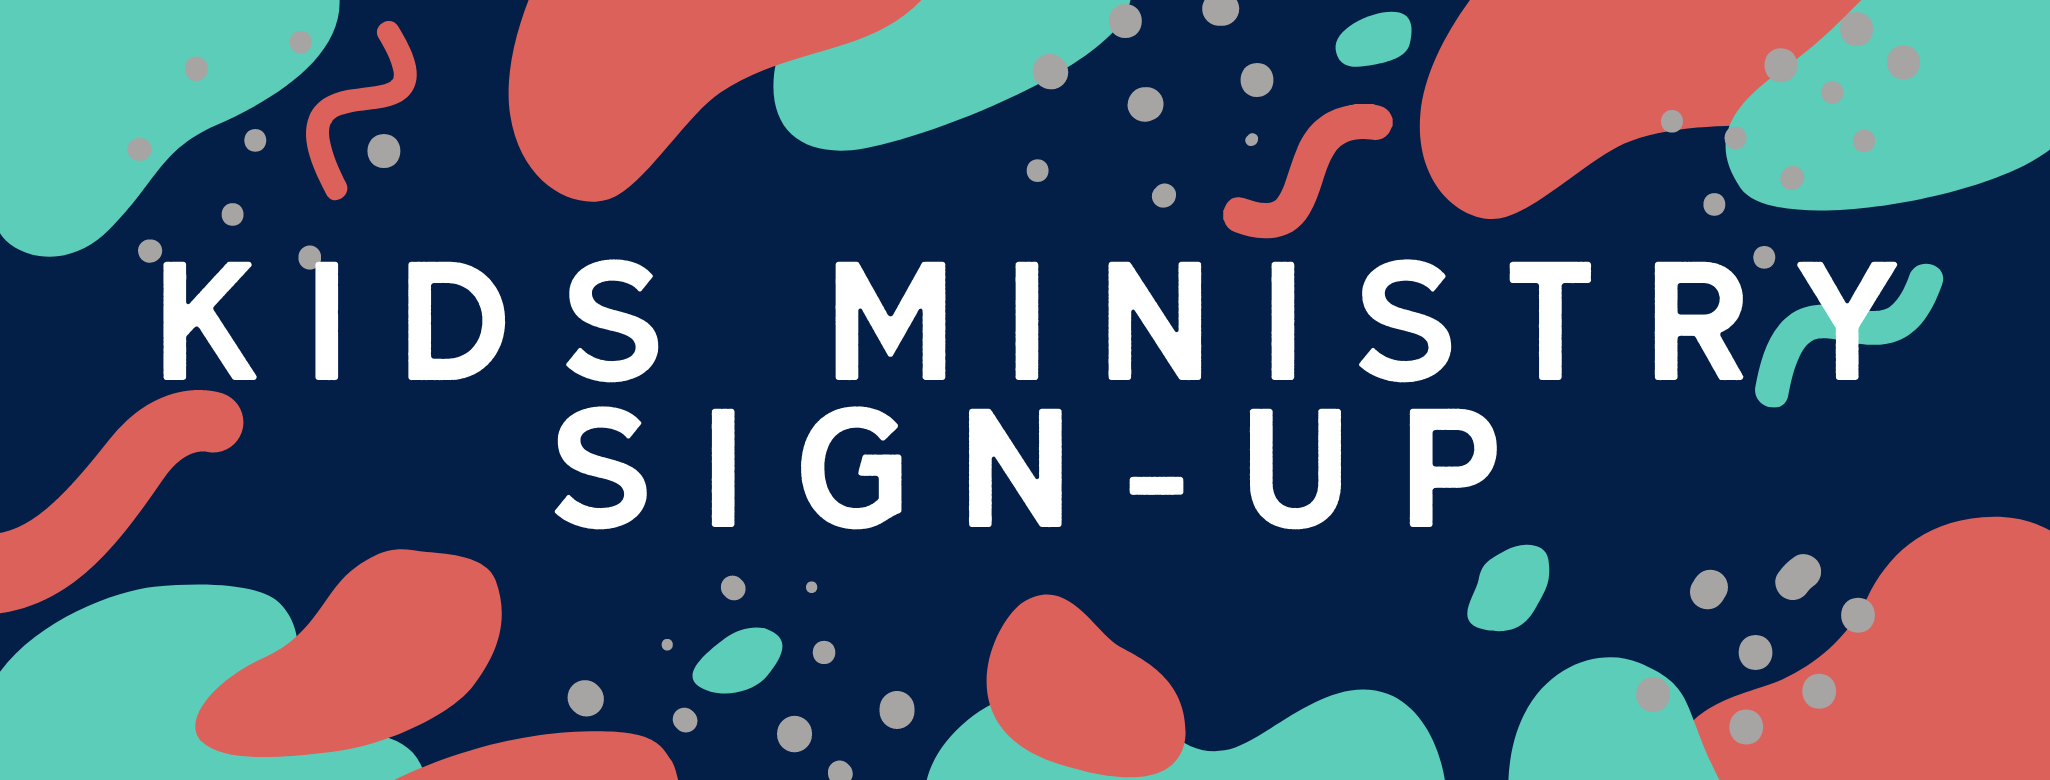 Kids Ministry Sign up graphic